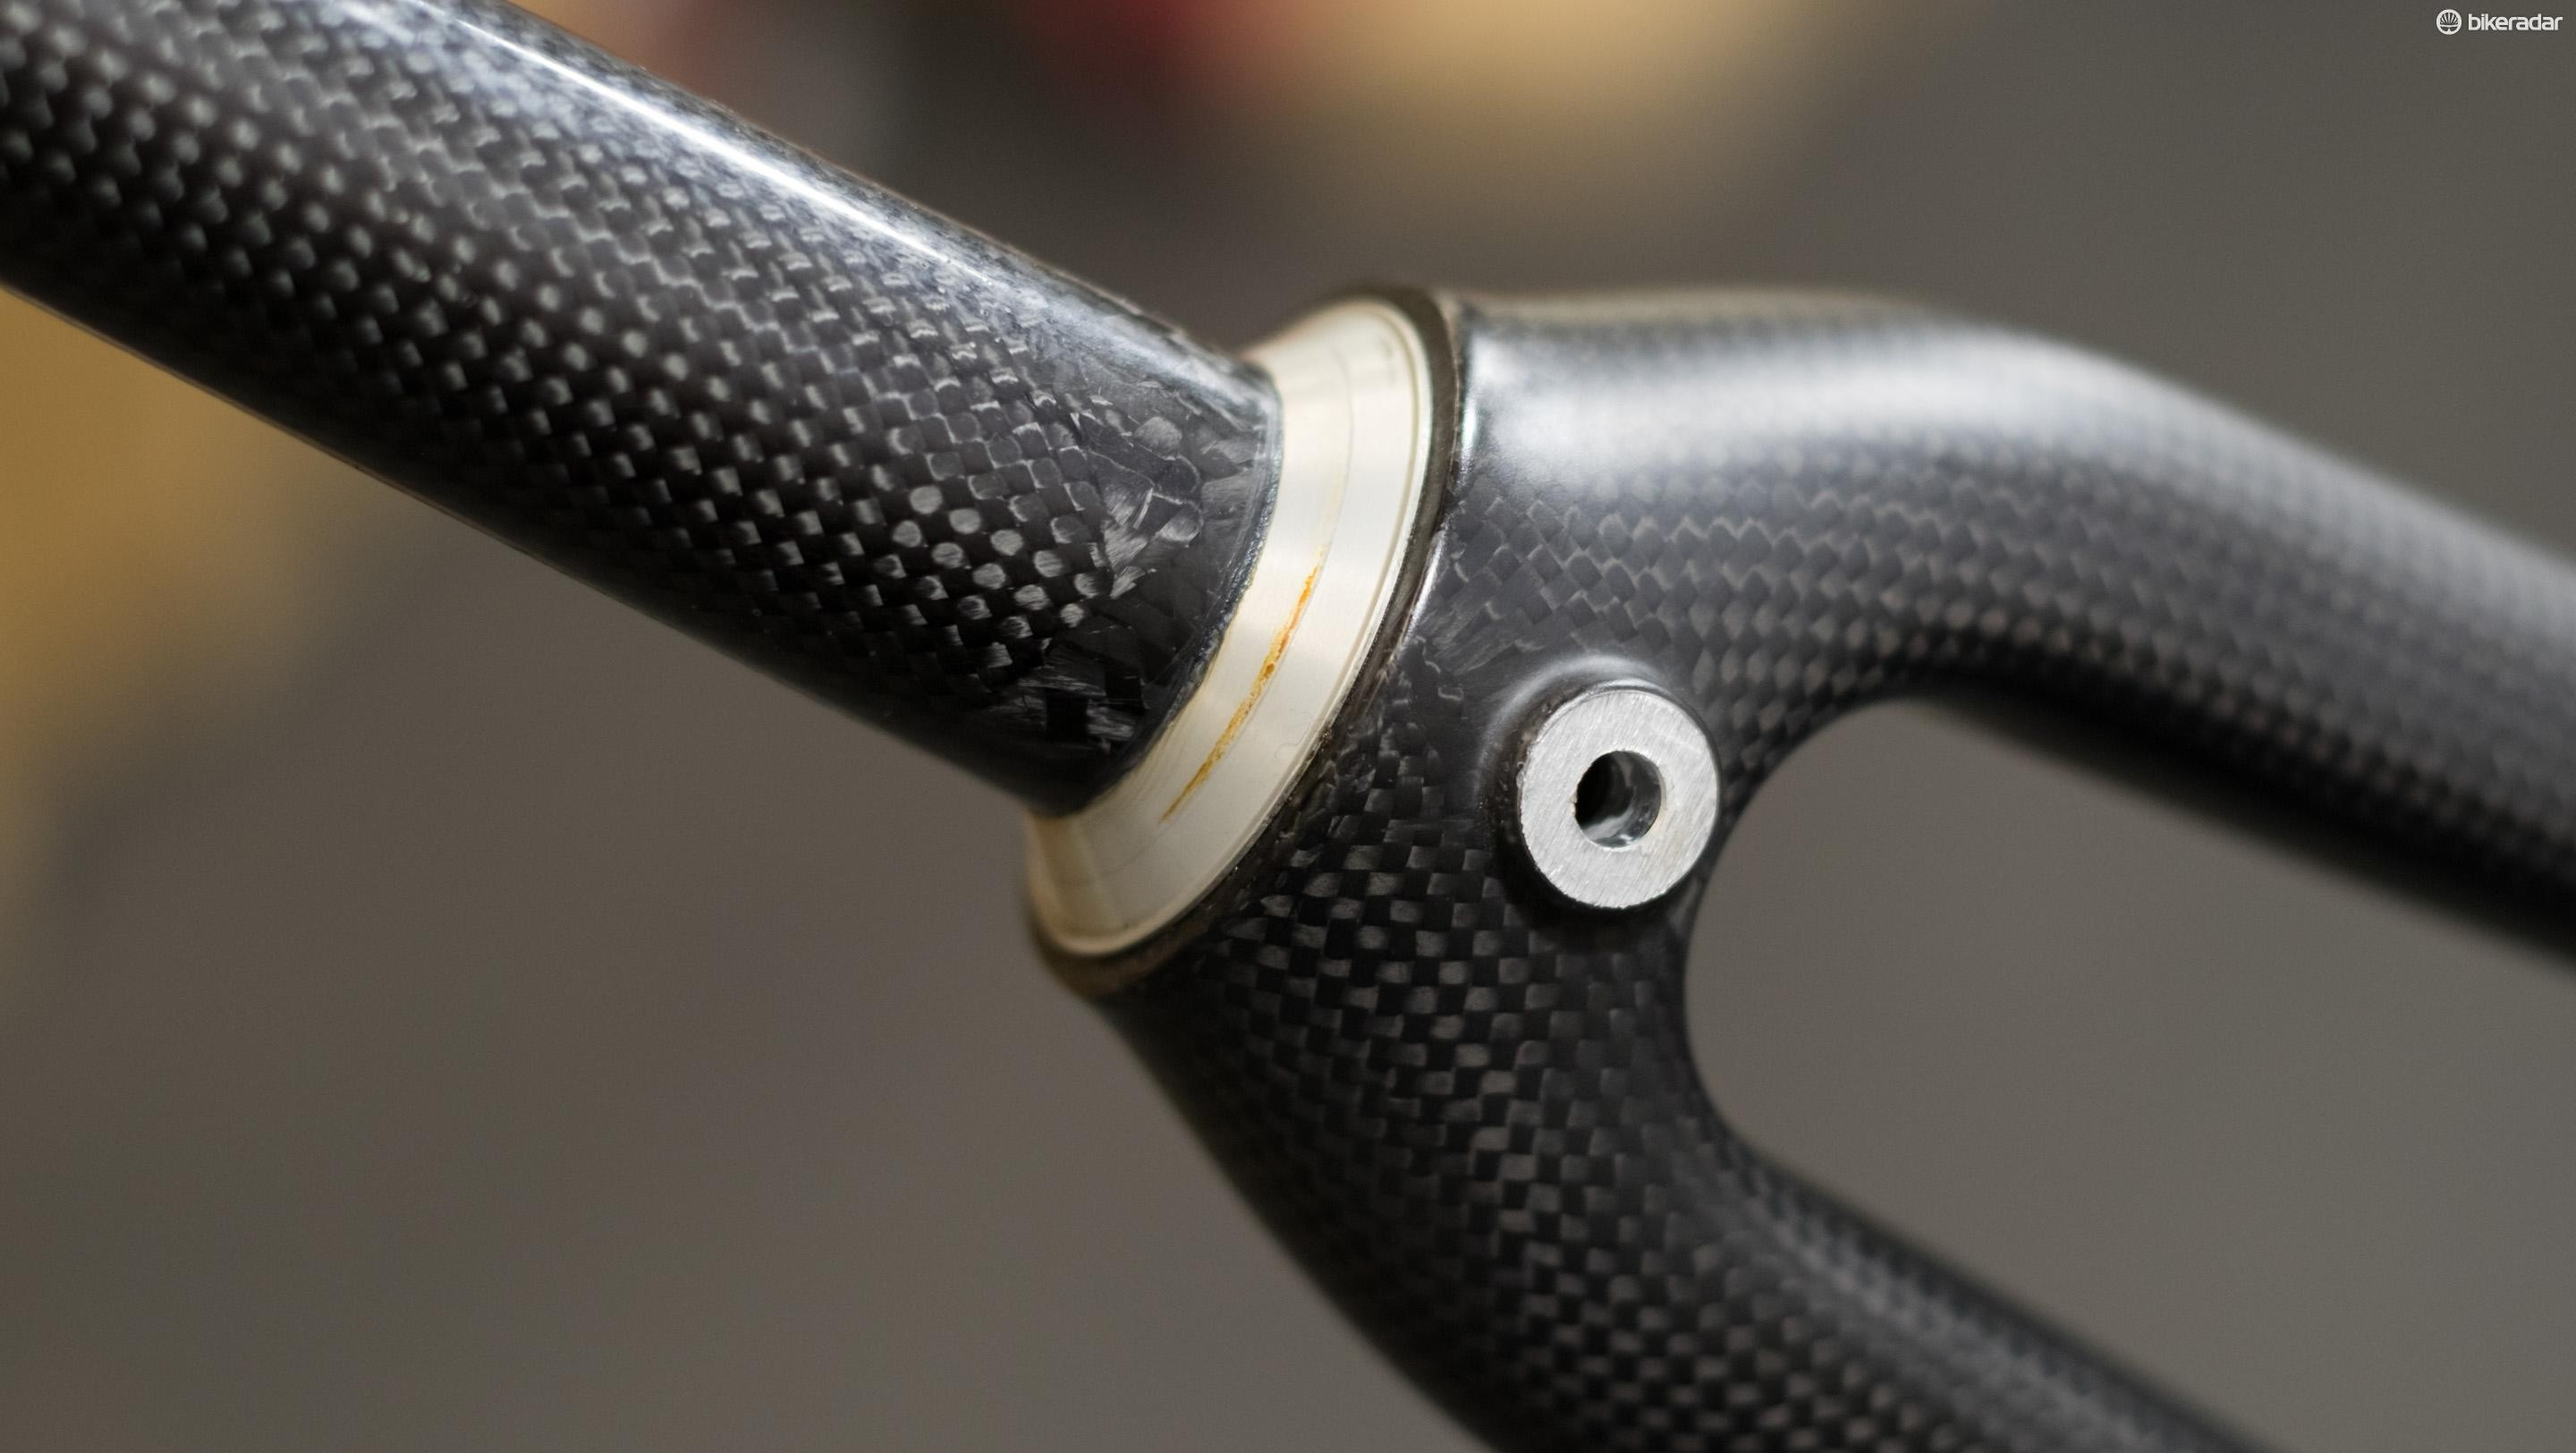 An integrated crown race (this one isn't removable) interfaces directly with the headset bearings